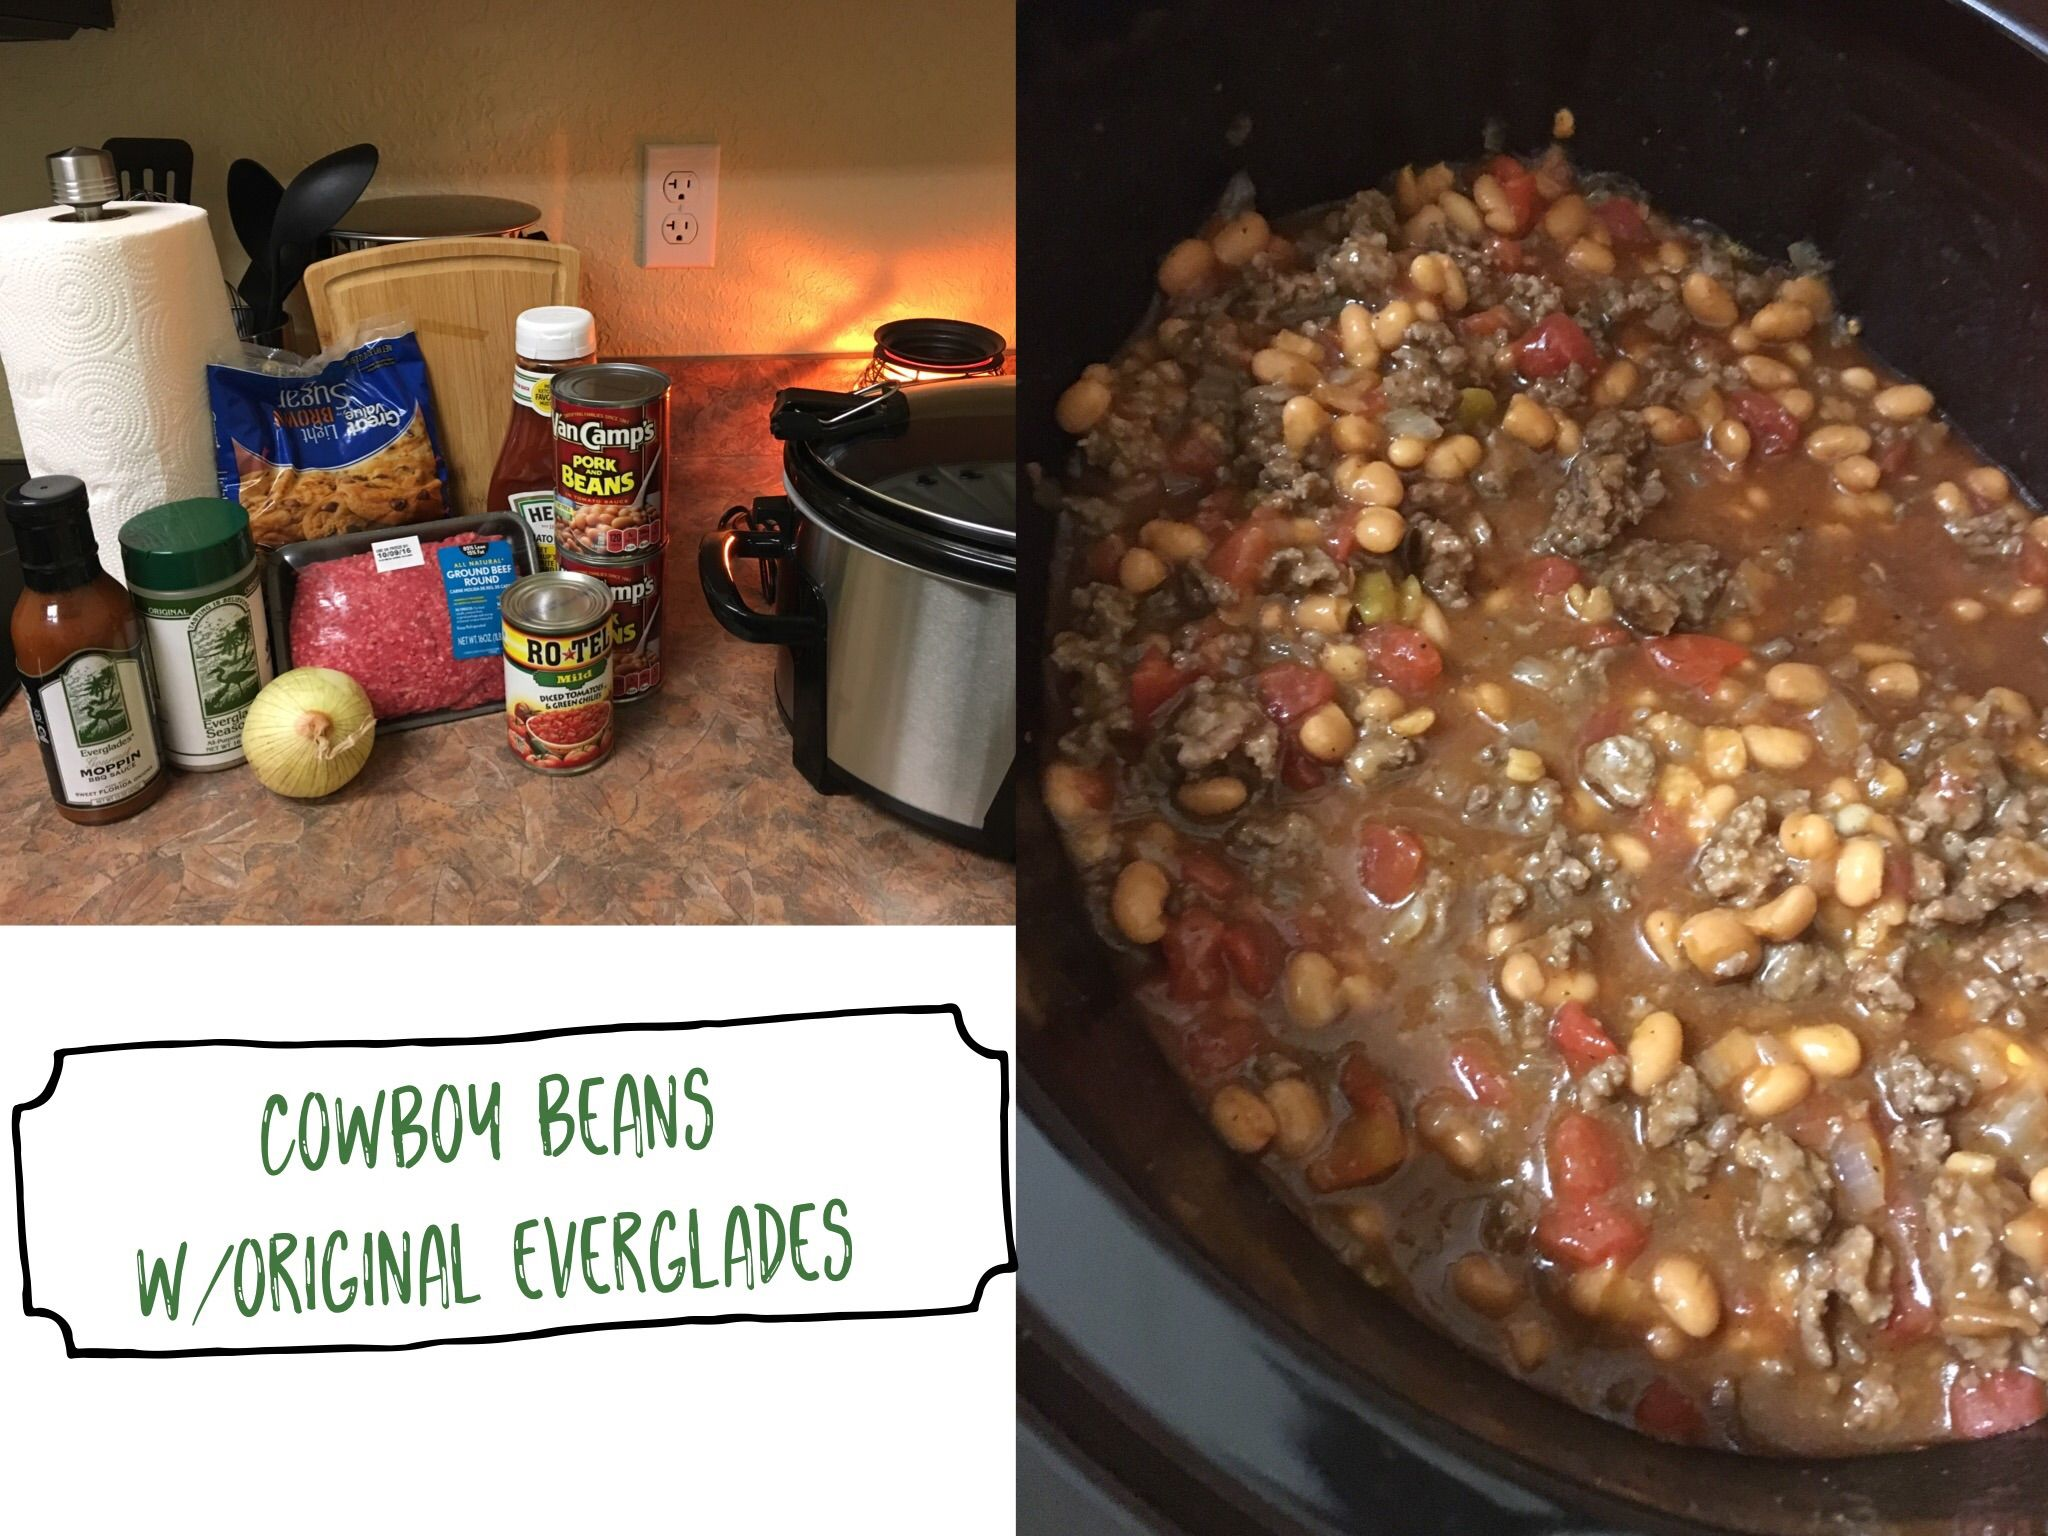 Everglades Cowboy Beans are great to take to a cookout or as